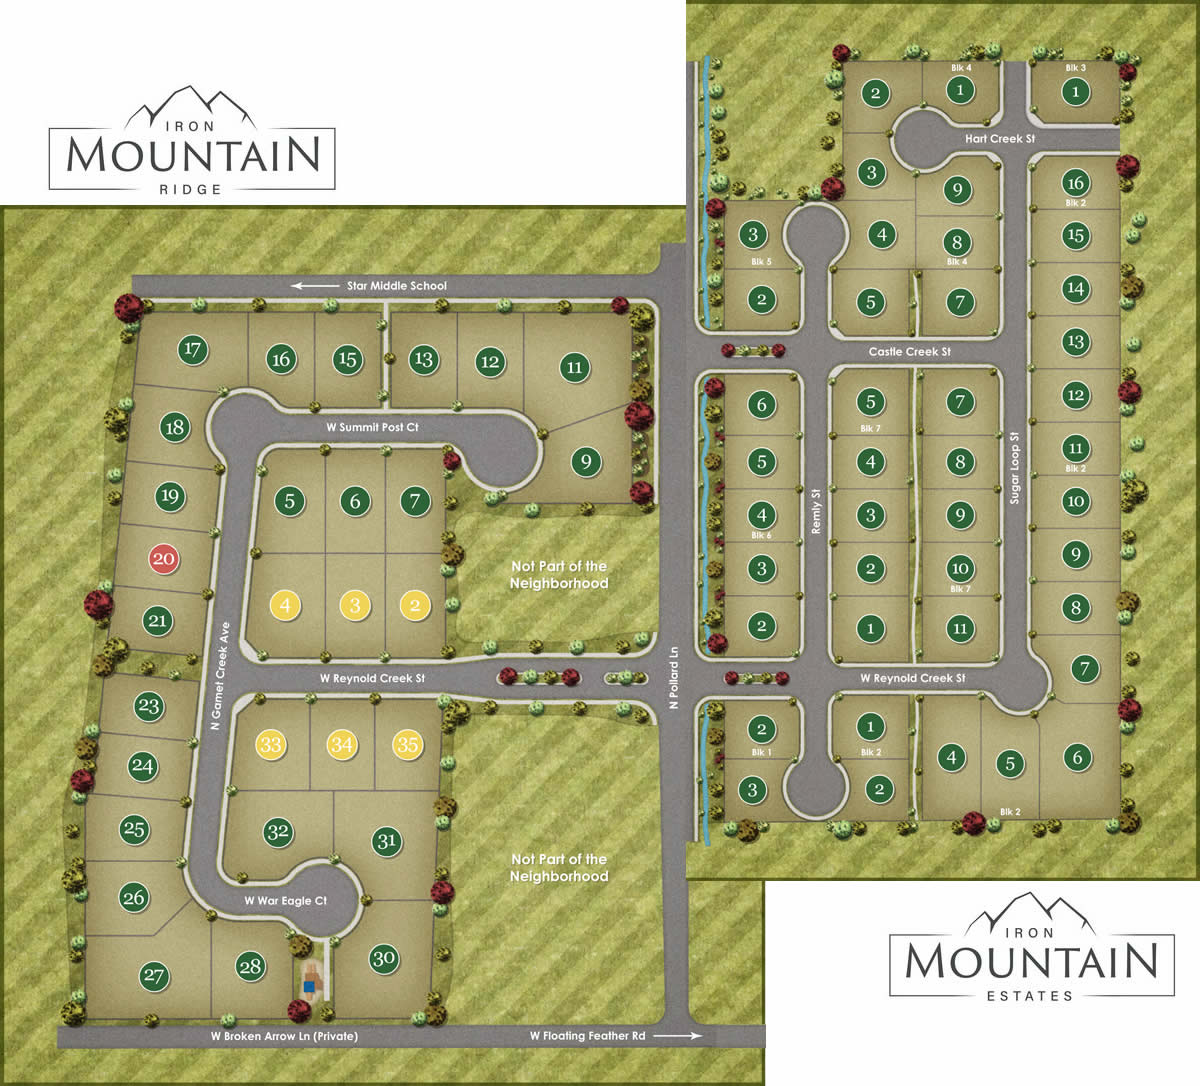 Iron Moutain Subdivision Plat Map